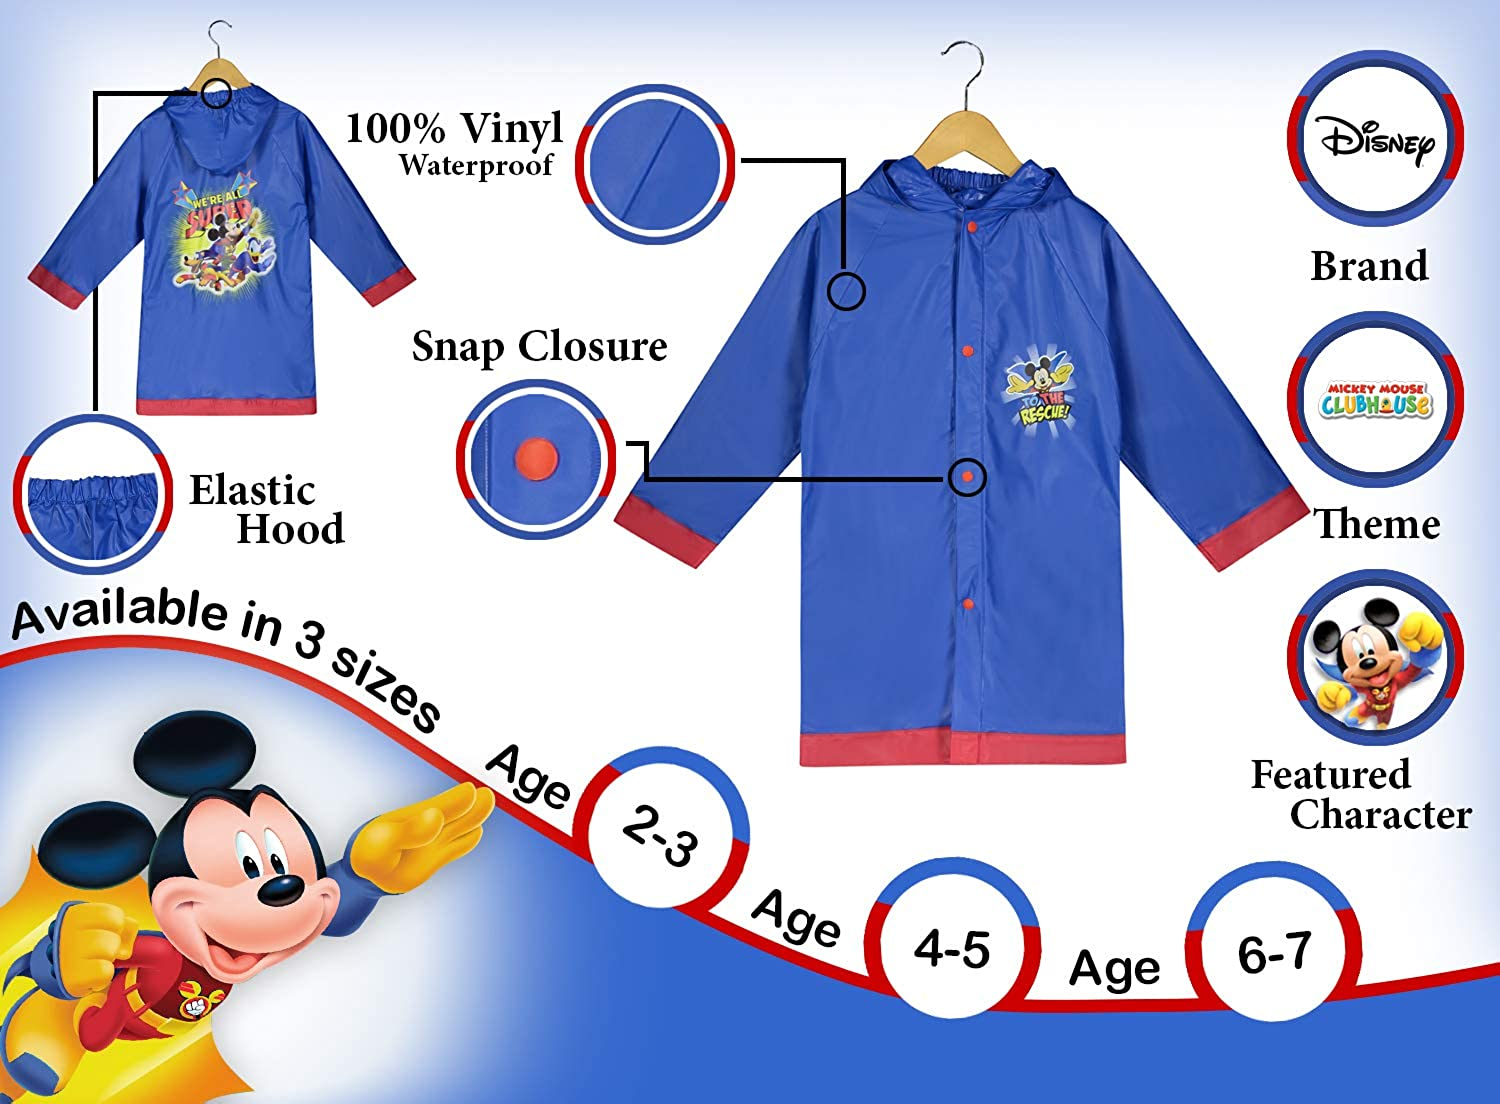 Disney Little Boys Mickey Mouse ClubHouse Waterproof Outwear Hooded Rain Slicker - Toddler